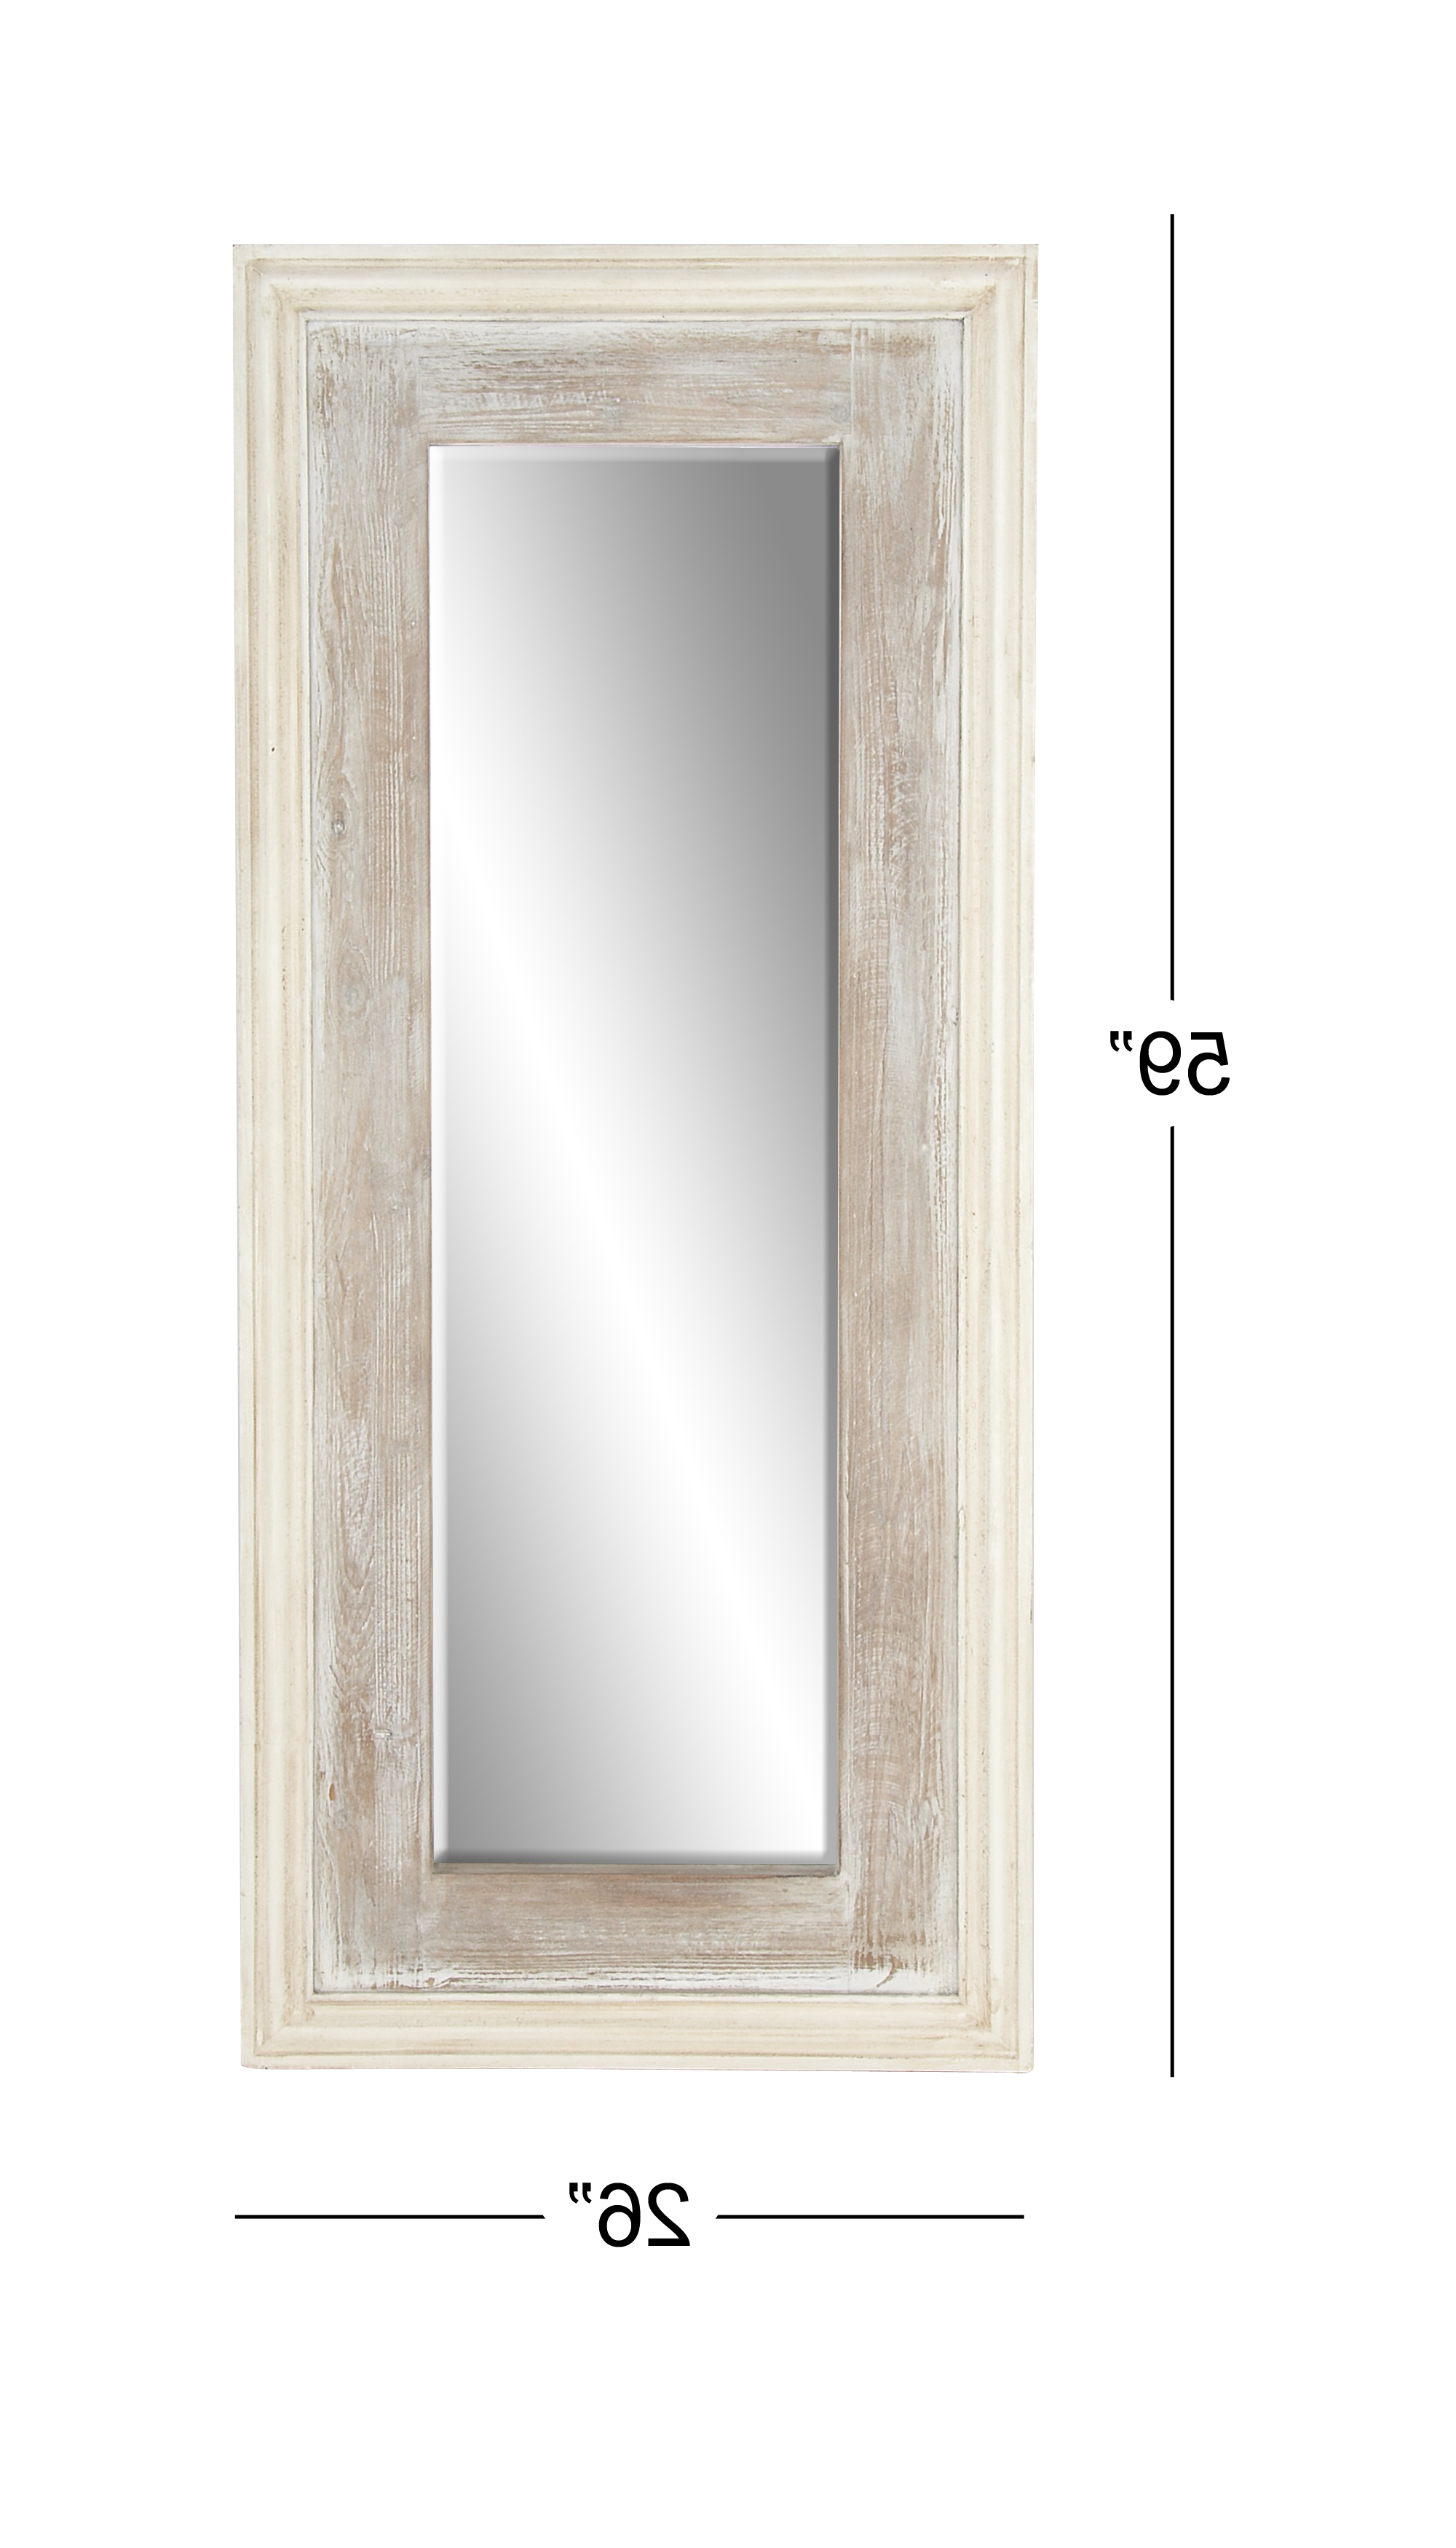 Most Recent Full Length White Wall Mirrors Inside Decmode Rustic Fir And Pine Wood Full Length White Wall Mirror, White (View 11 of 20)